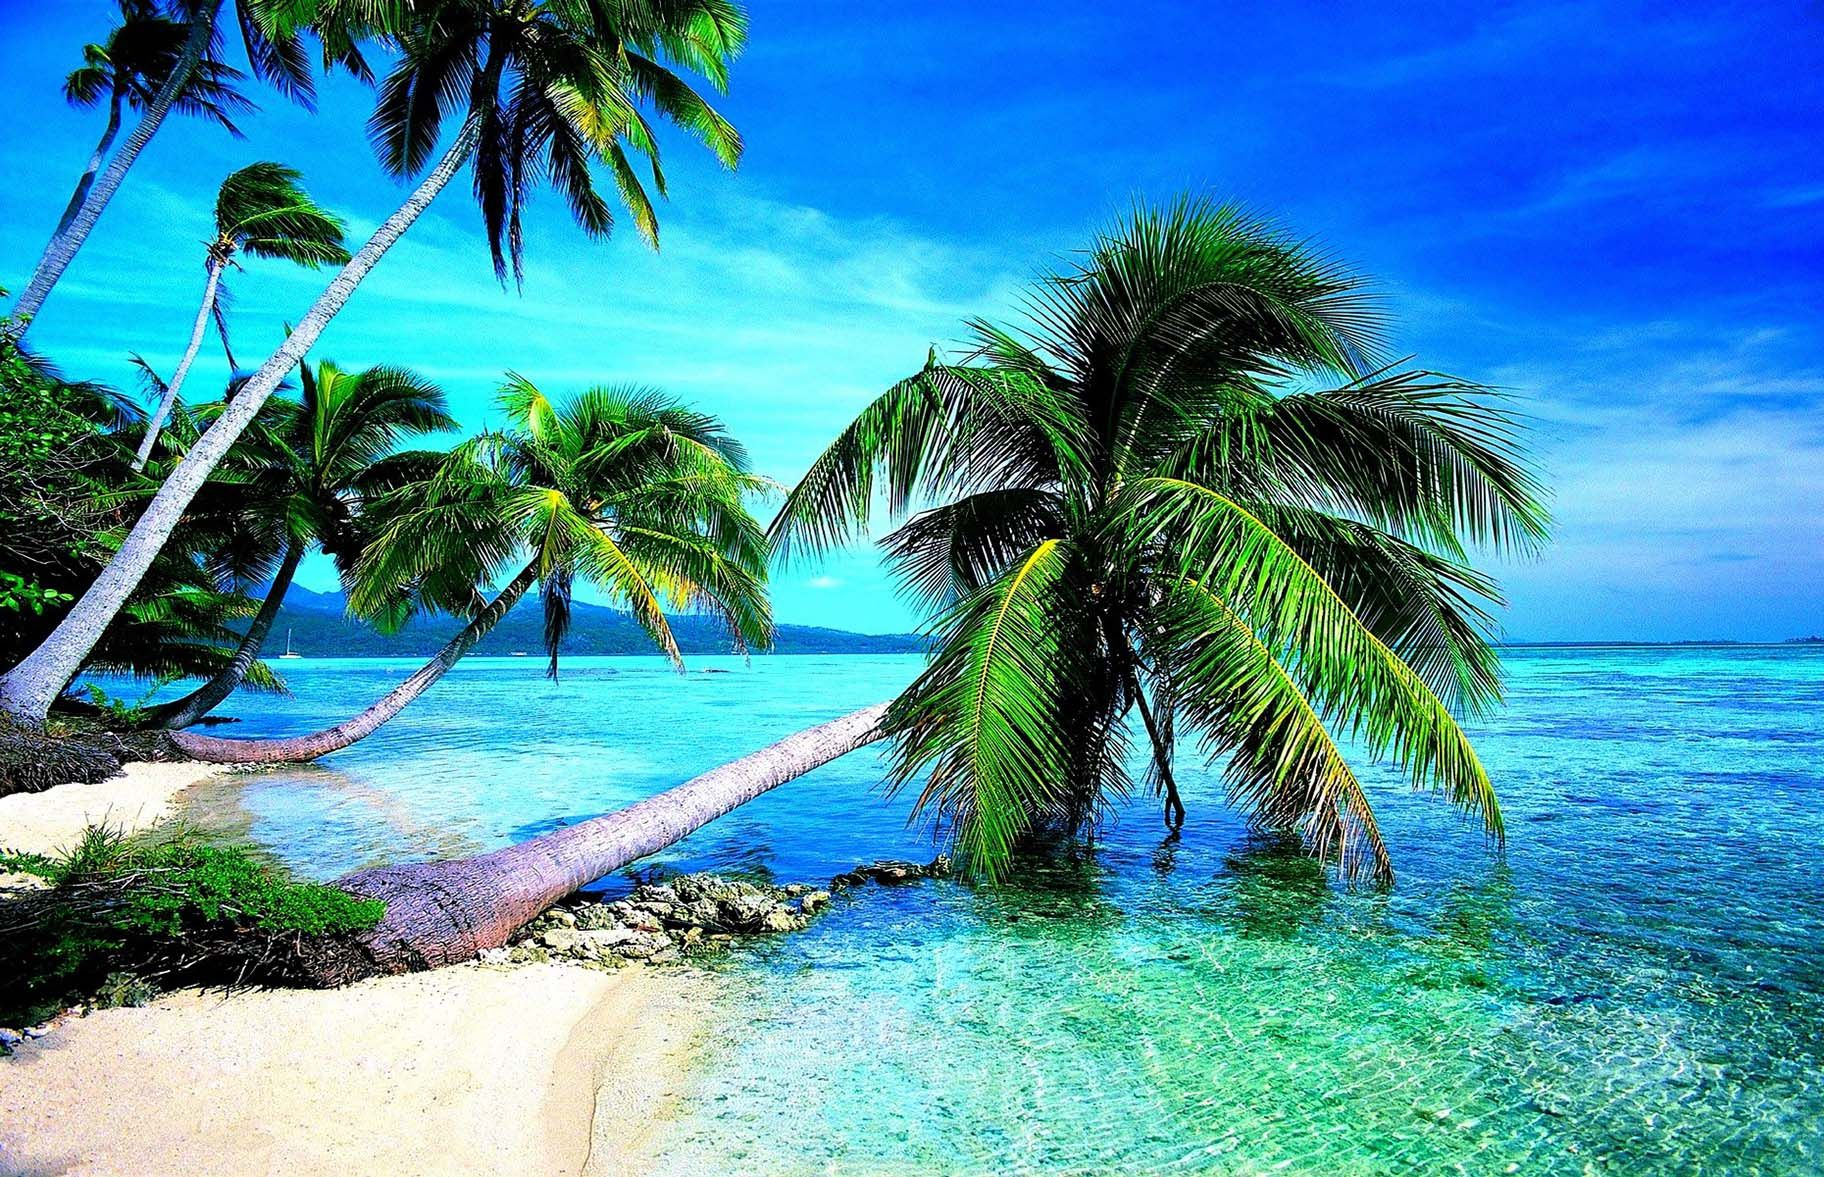 Trees On Beach Most Attractive Wallpapers Hd 4k Beach Wallpaper Attractive Wallpapers Hd Wallpapers For Pc